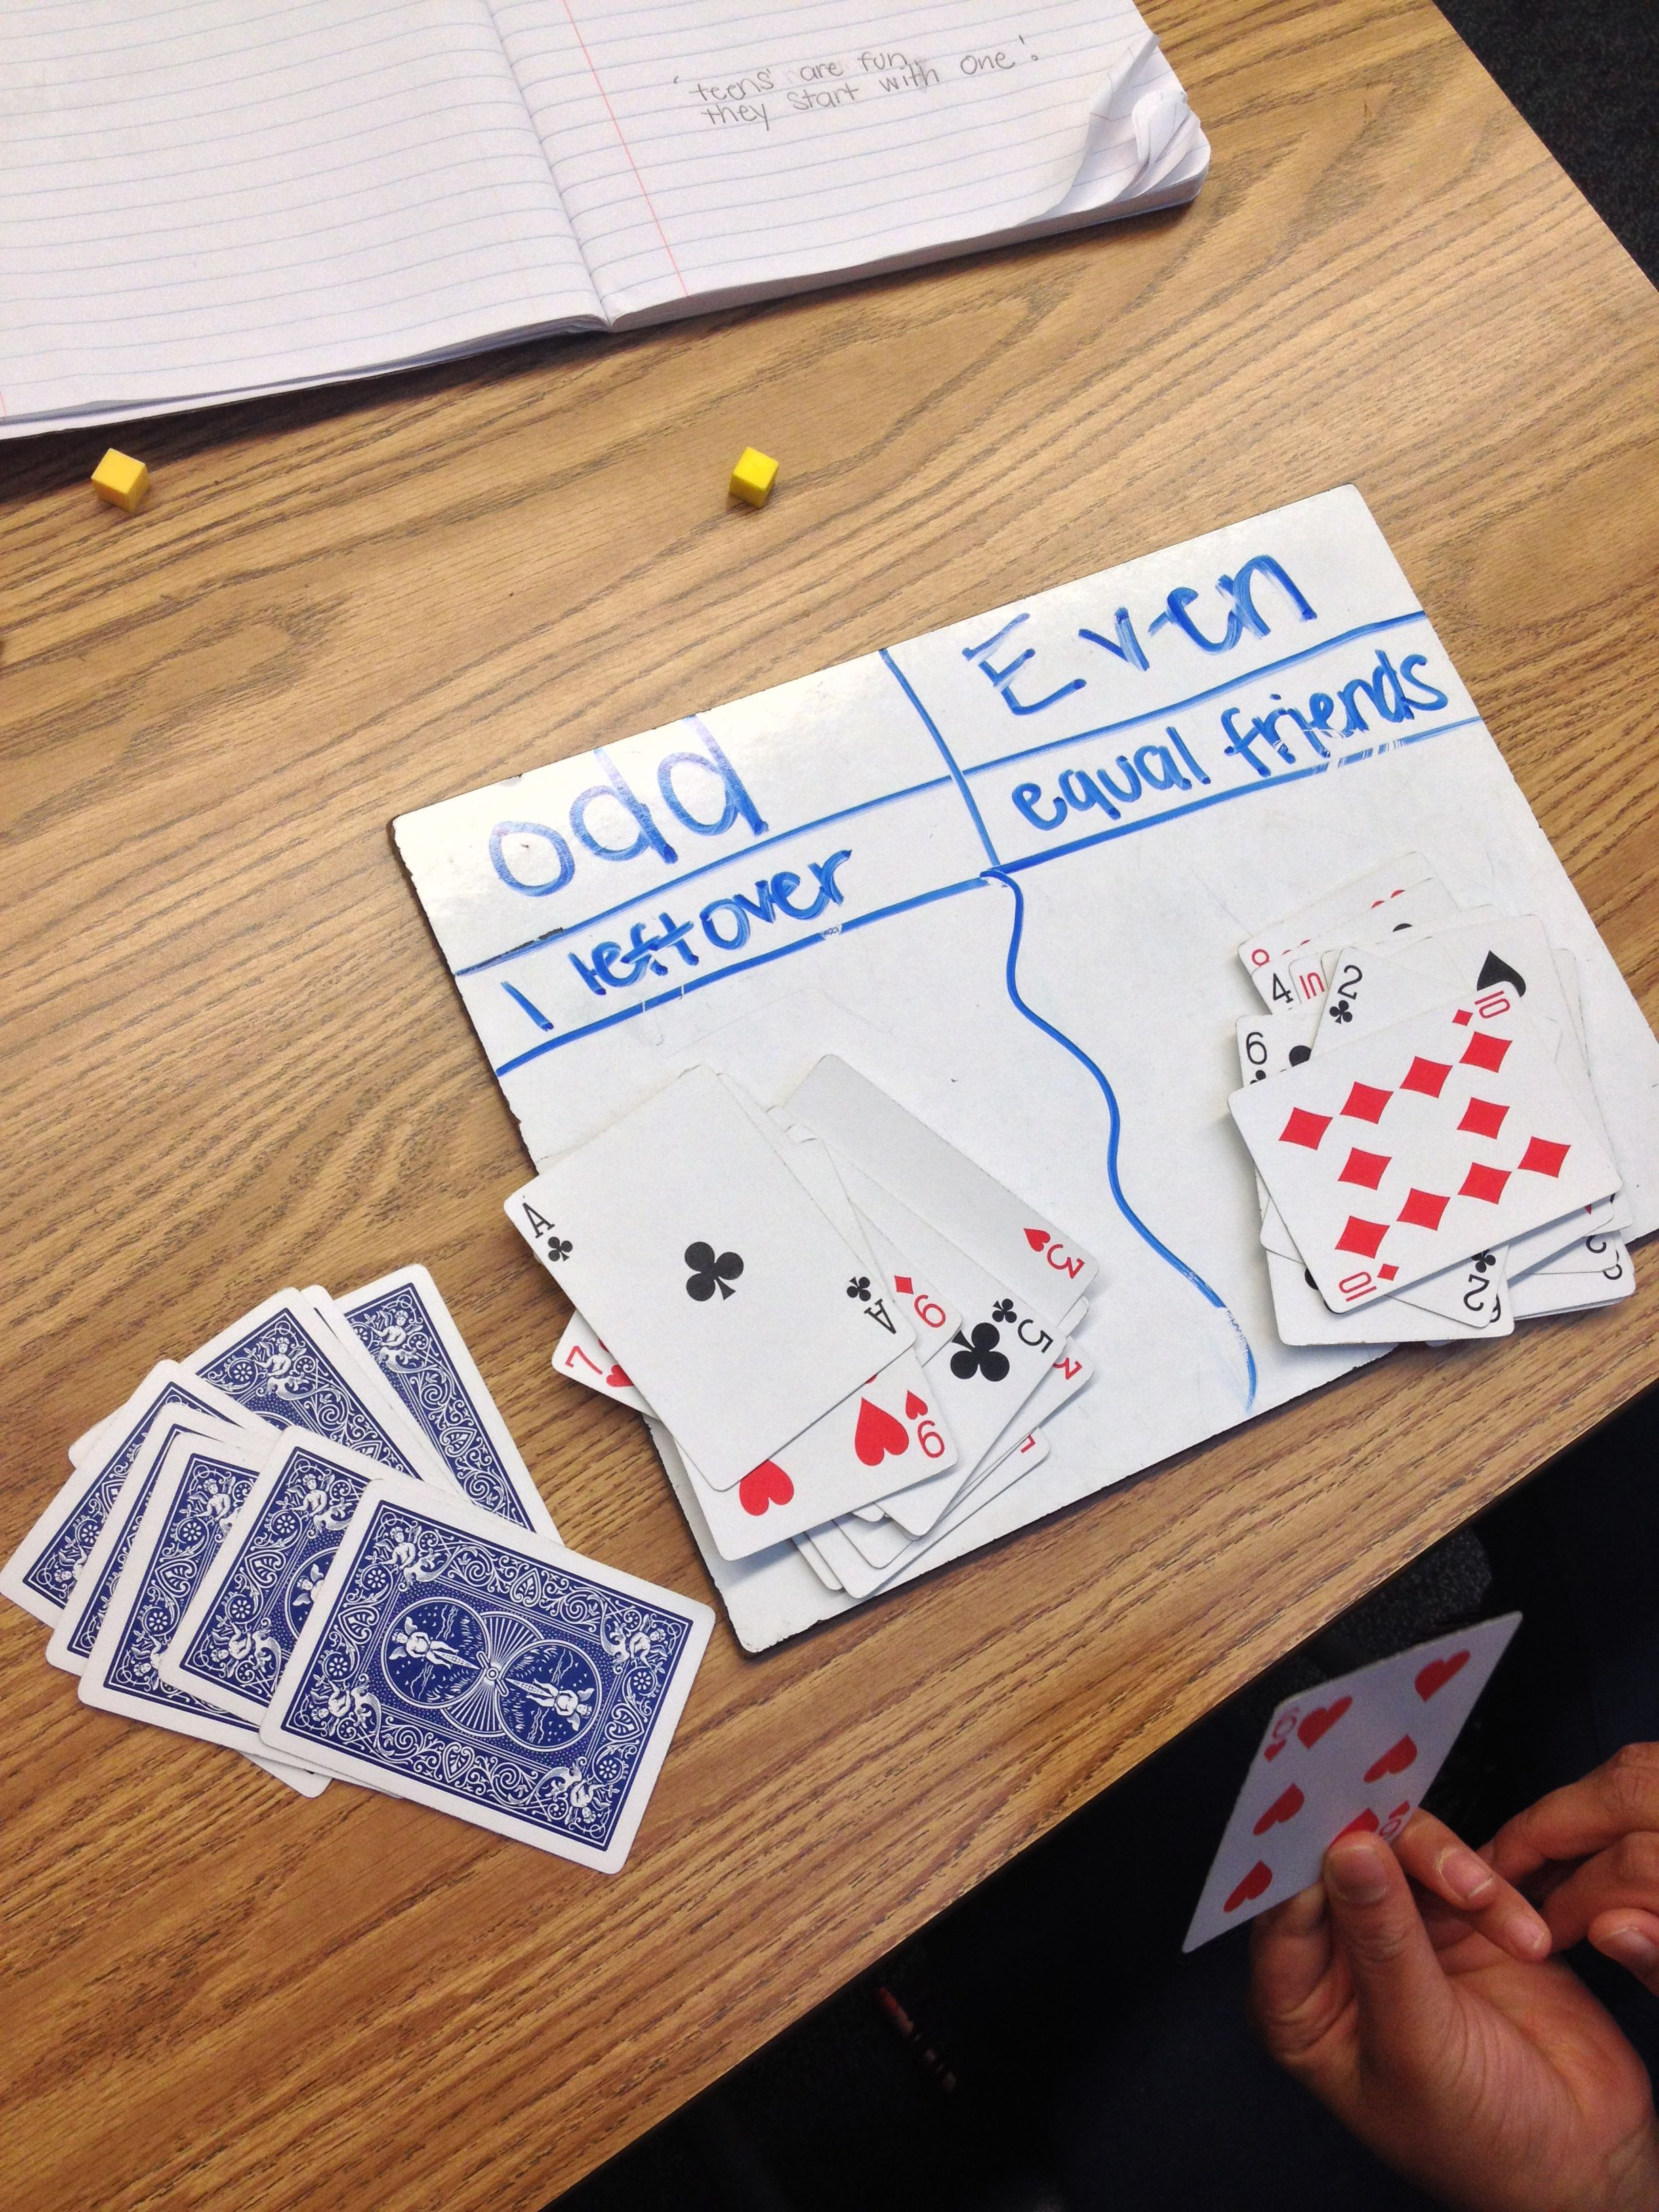 The Odd and Even Card Game. Make a t chart explaining the